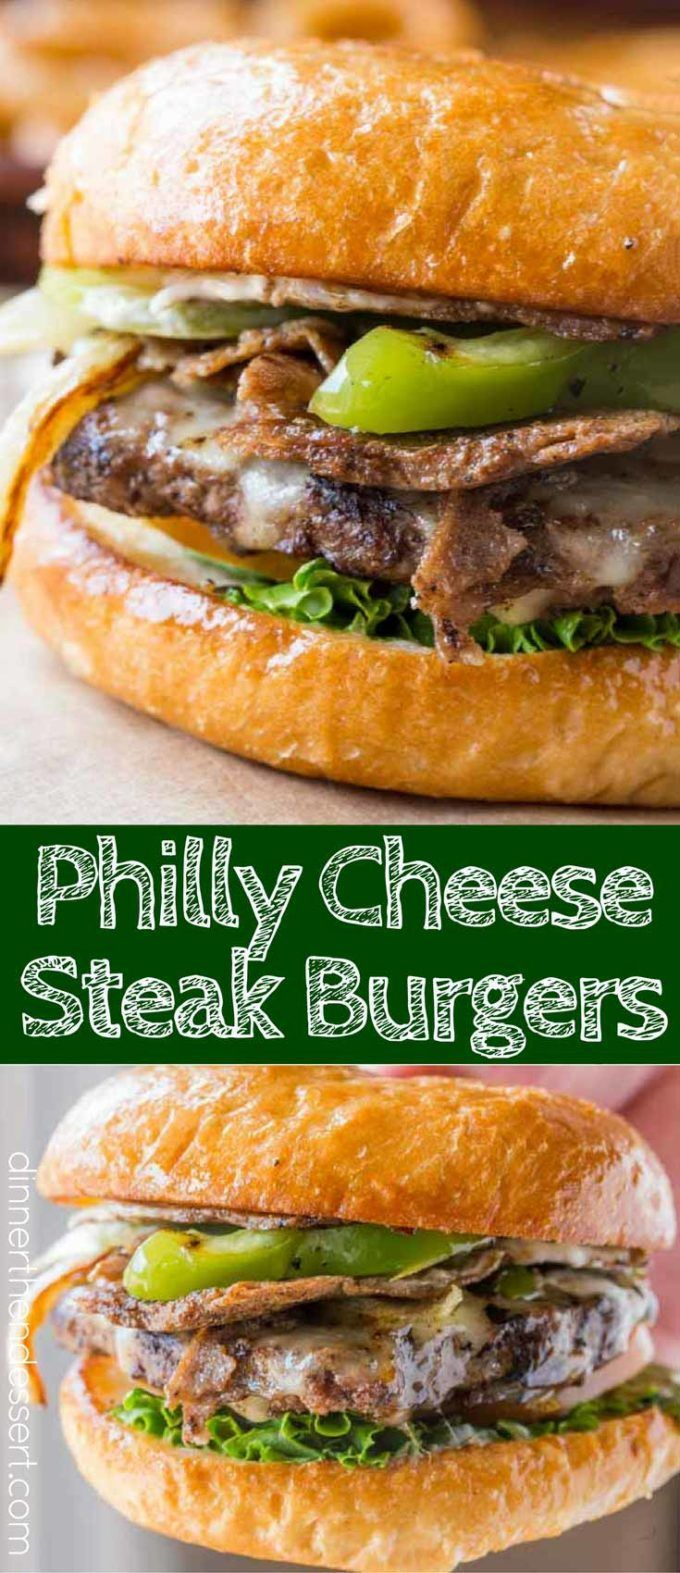 Philly Cheese Steak Burgers are the perfect cookout burger that friends and family will love!